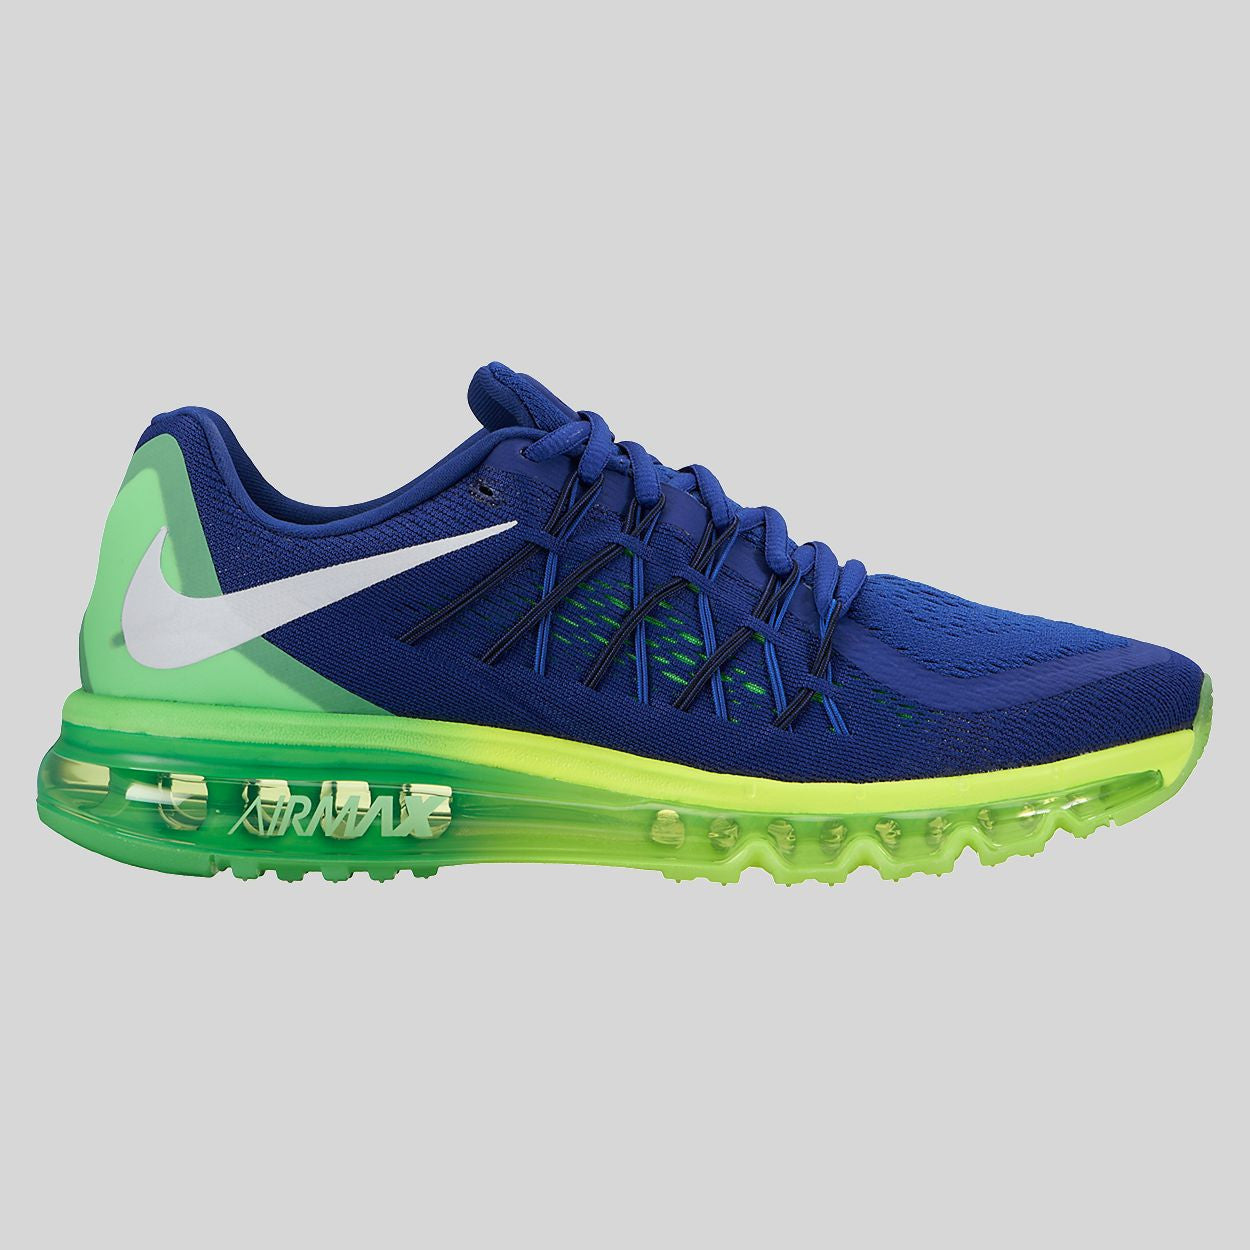 Nike Air Max 2015 Deep Royal Blue Volt Green Strike 698902 407